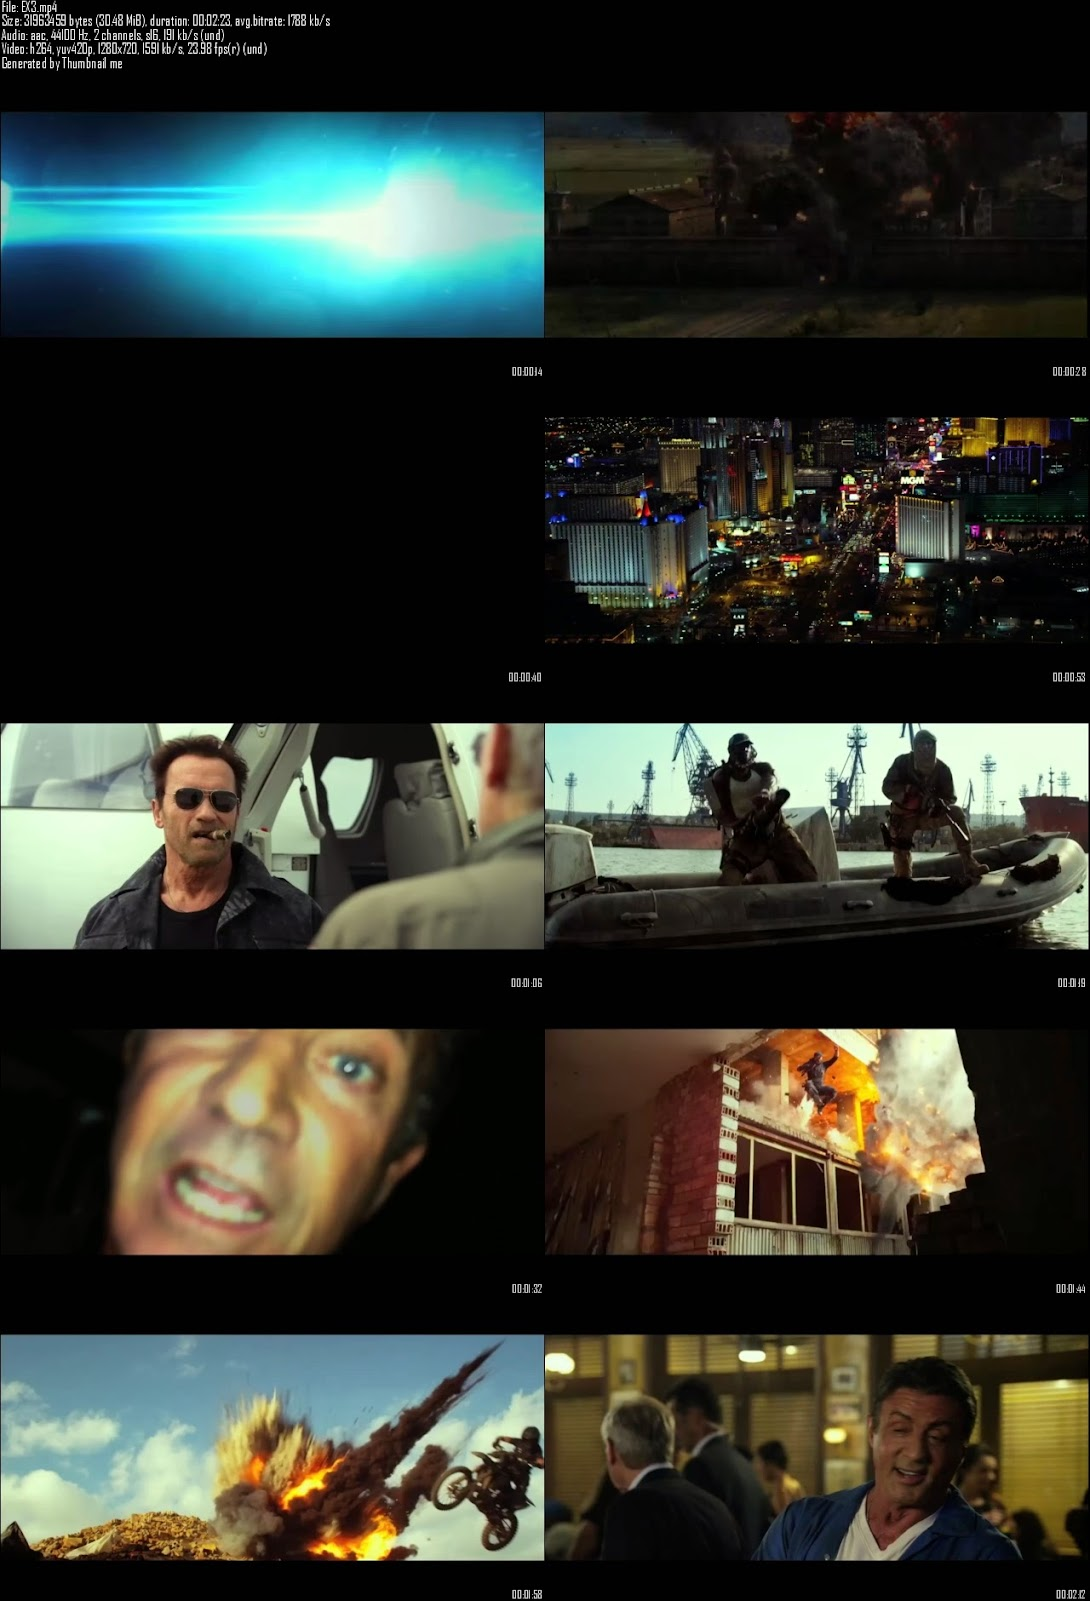 Mediafire Resumable Download Link For Teaser Promo Of The Expendables 3 (2014)